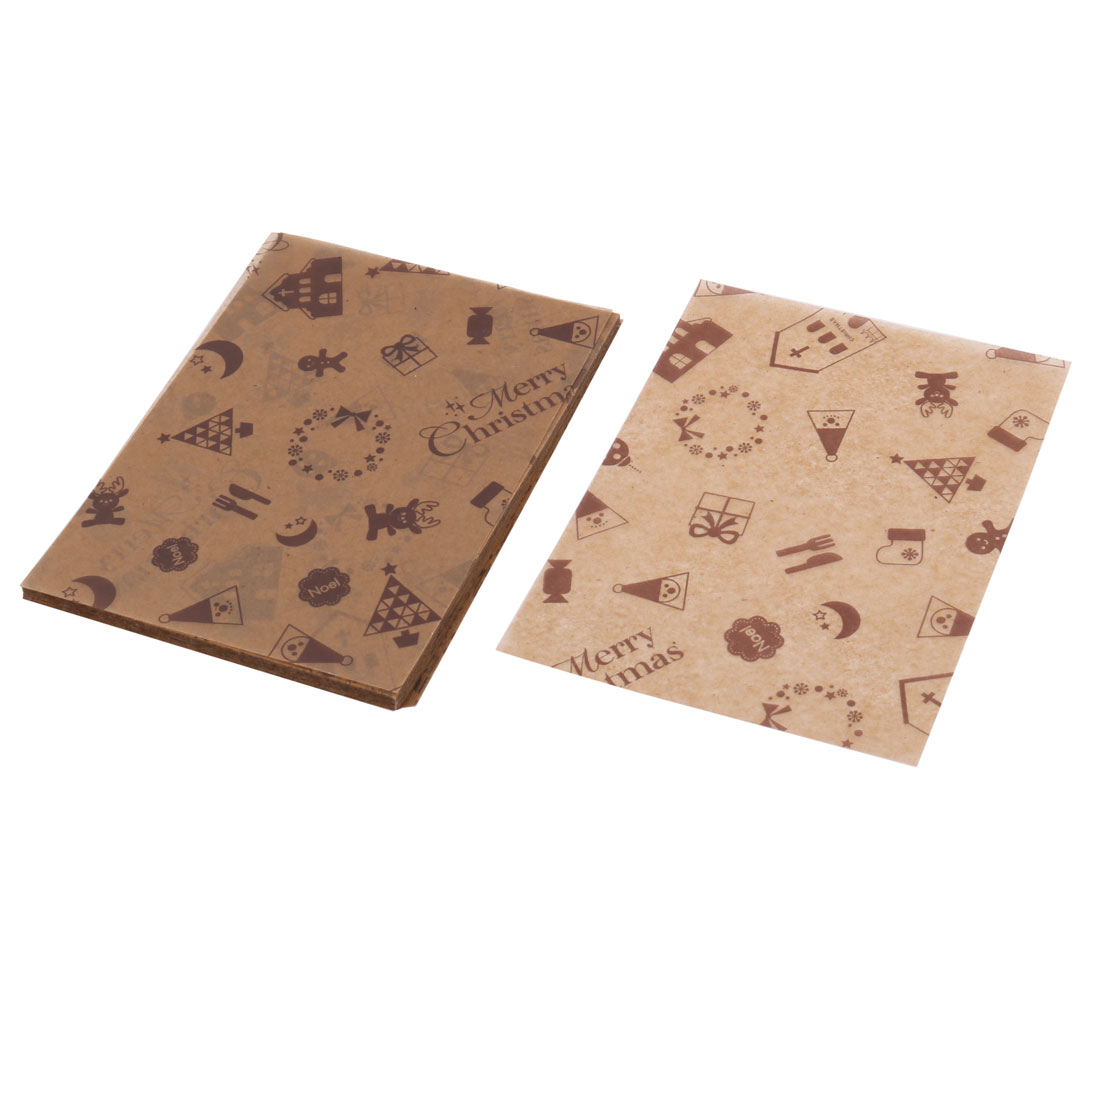 Home Hotel Cookies Sugar Chocolate Holder DIY Packaging Wrapping Paper 100 Pcs